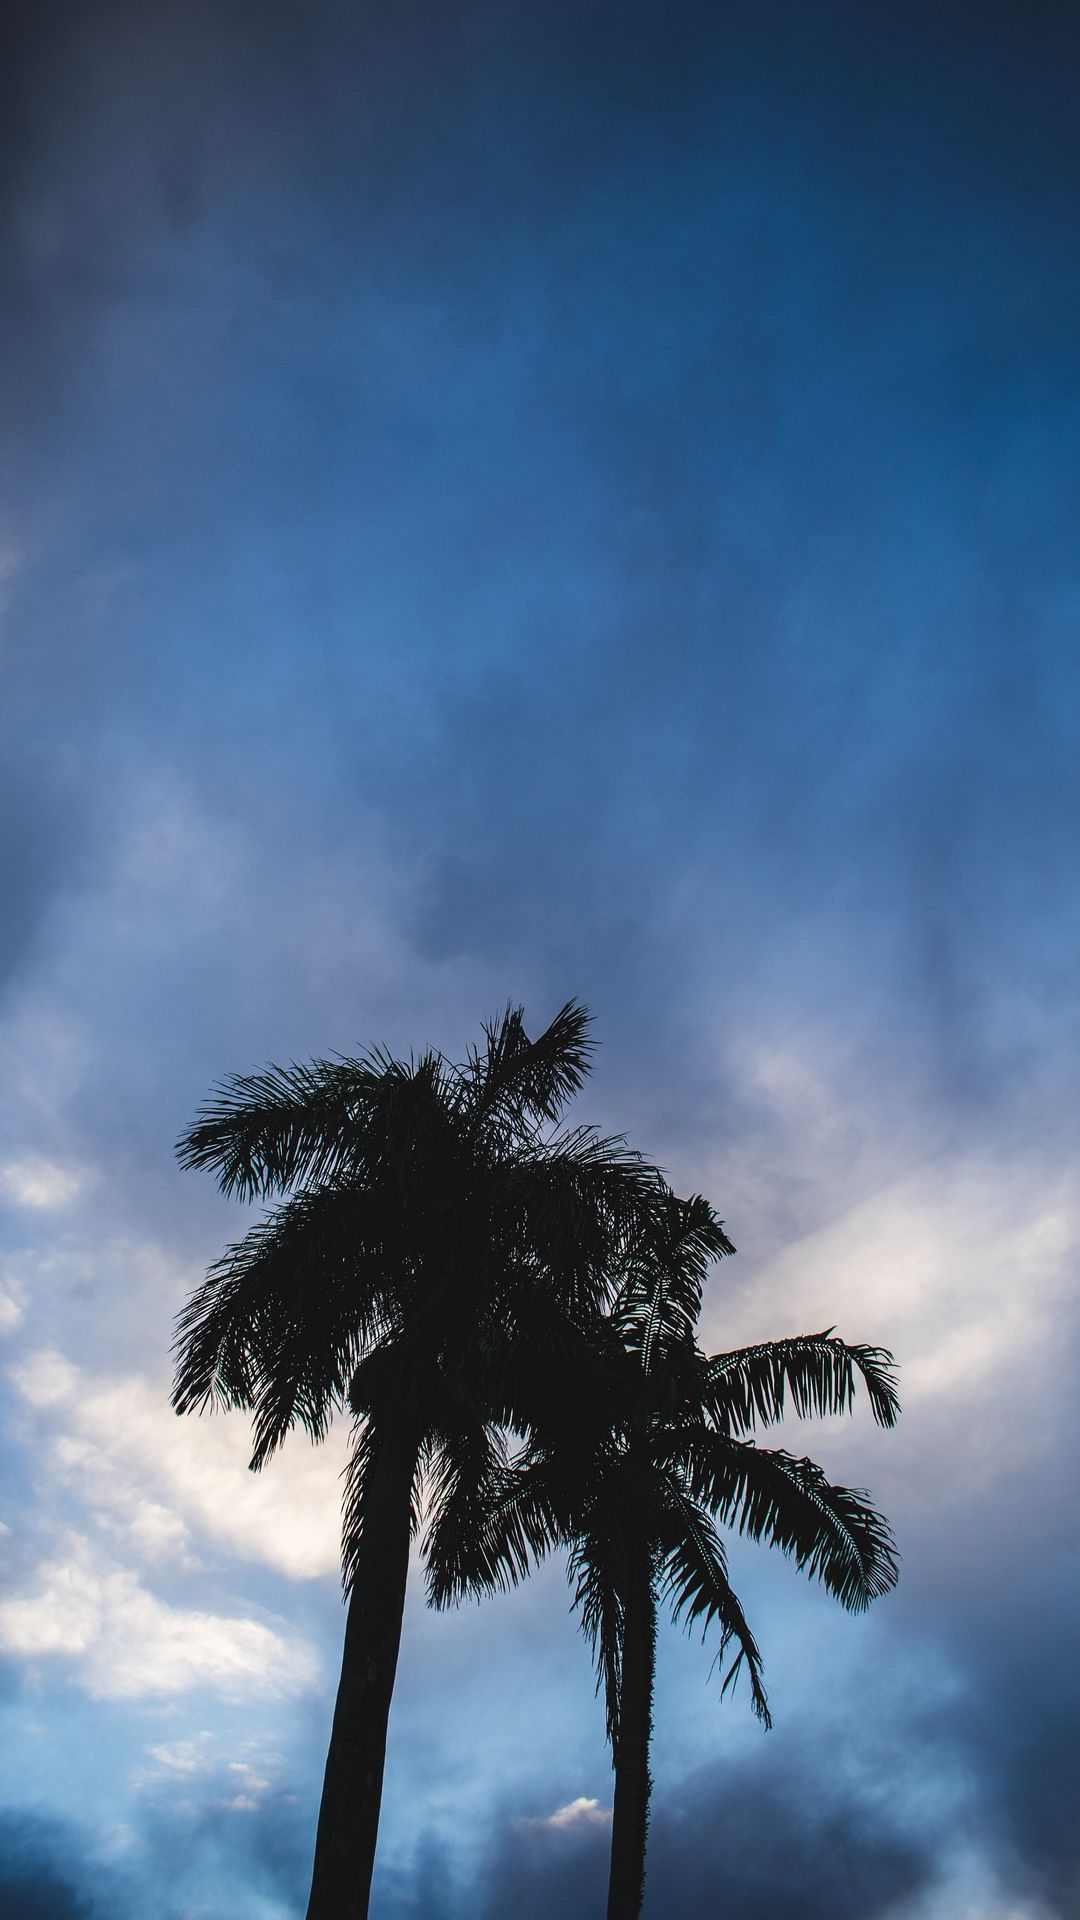 Wallpaper Palm Trees, Dark, Silhouettes, Sky, Clouds